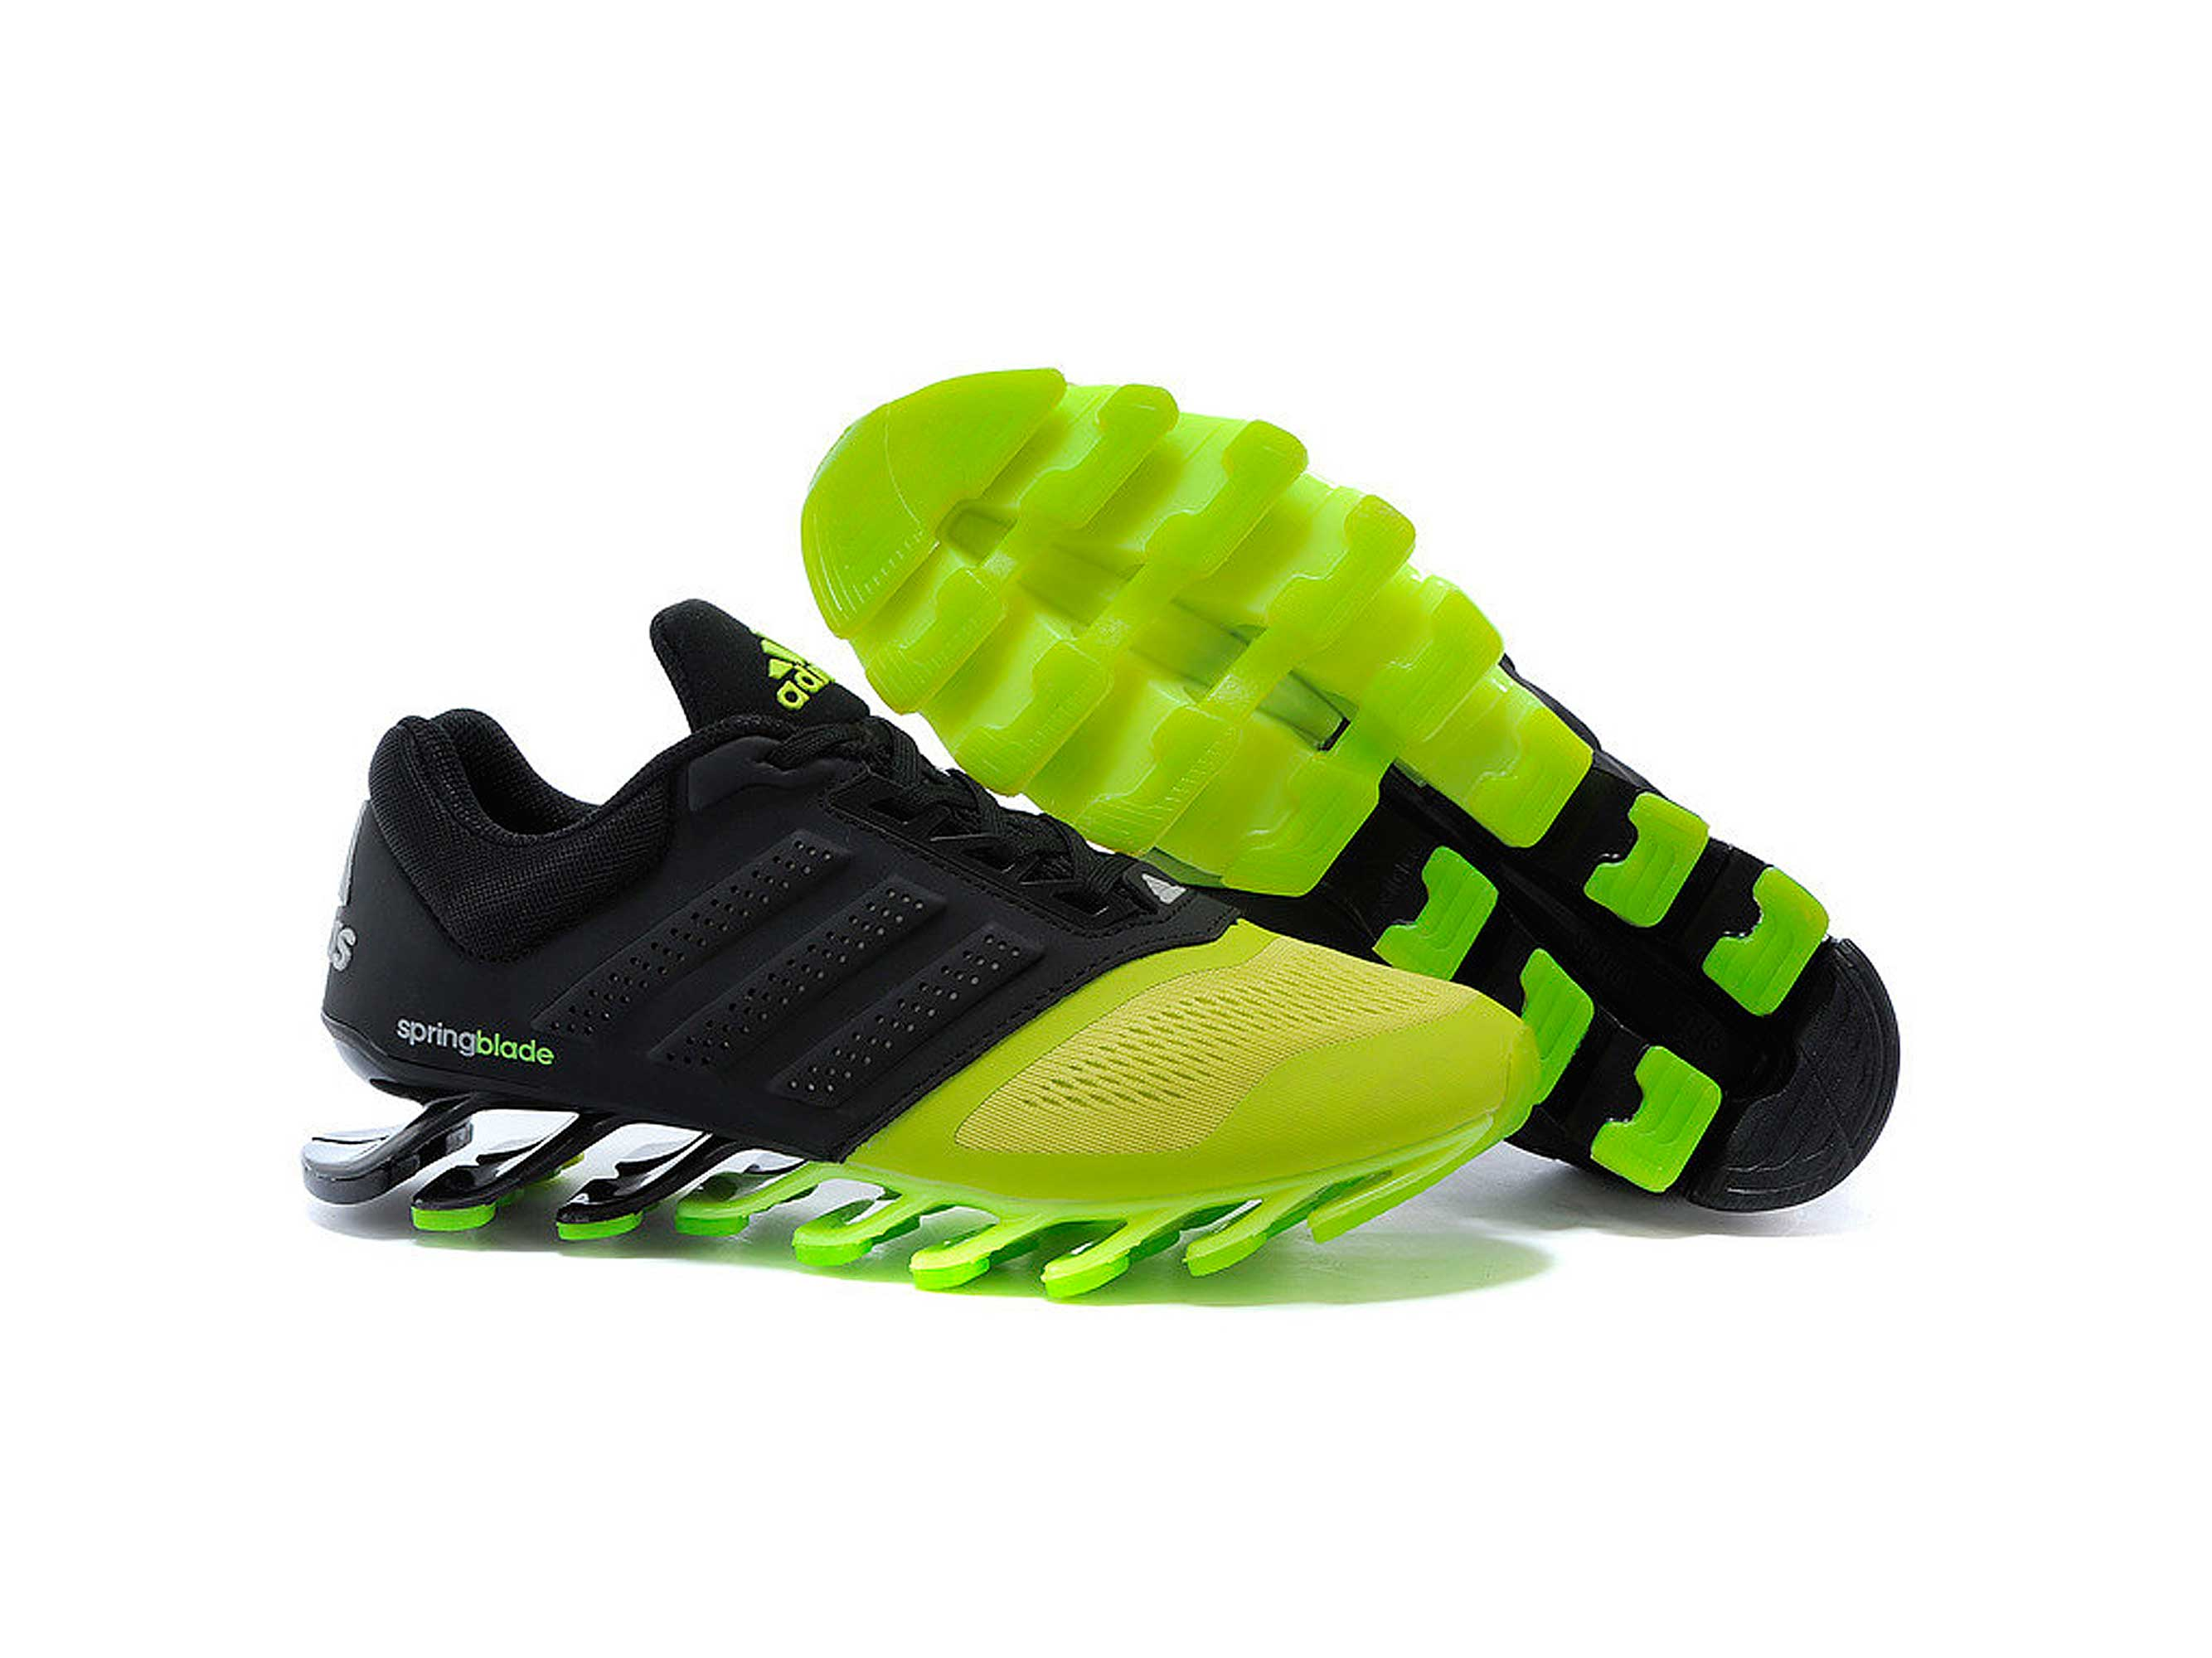 cheap for discount f6cf3 8cb88 adidas springblade drive 2.0 black volt s84052 купить